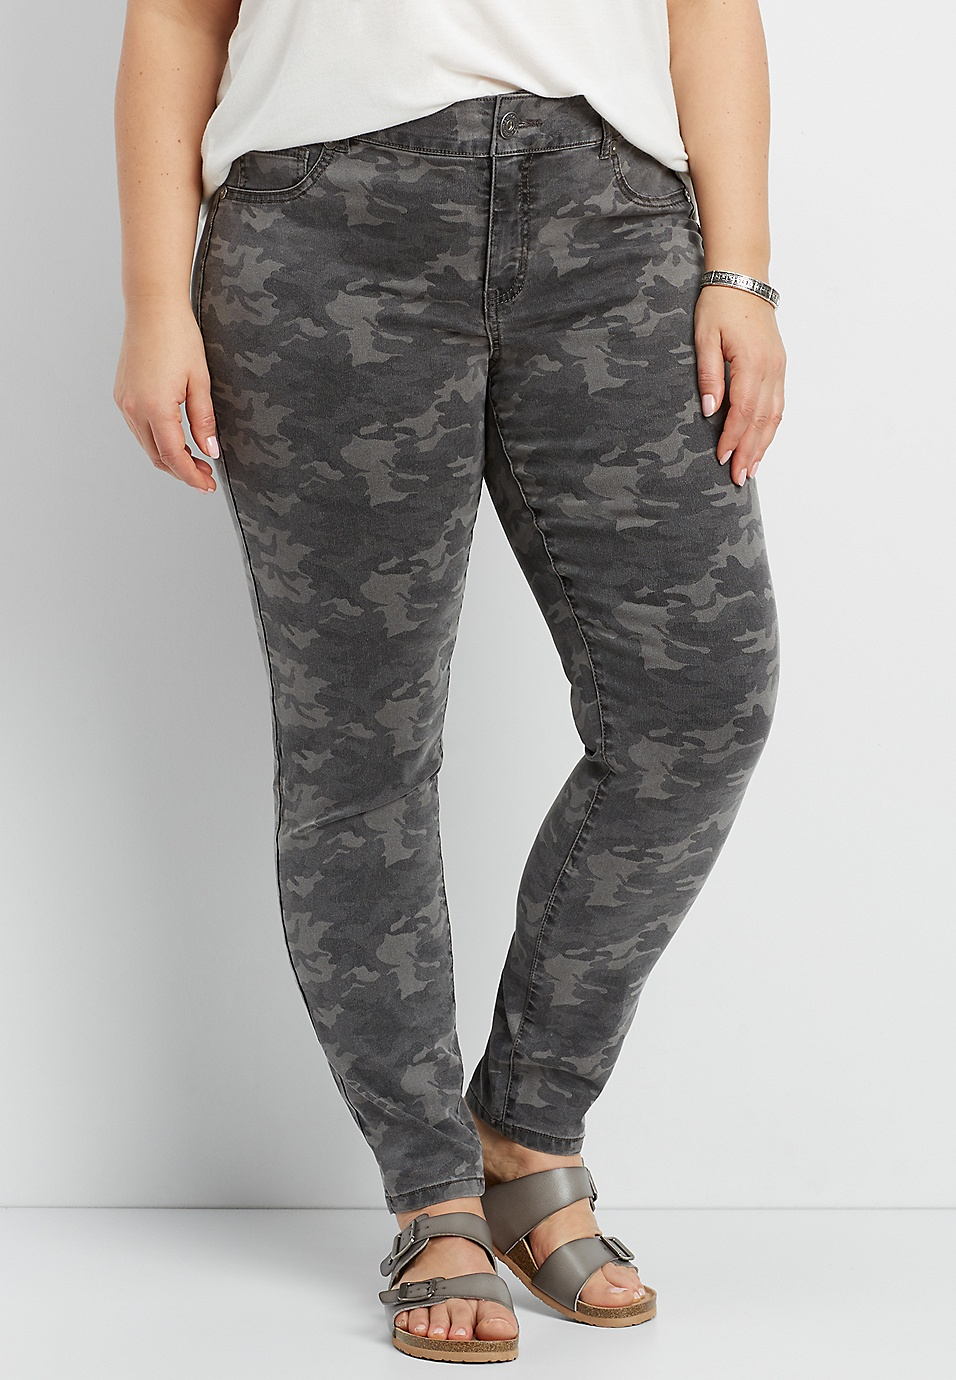 6c8f5a69a7152 DenimFlex™ plus size jegging in gray camo print | maurices